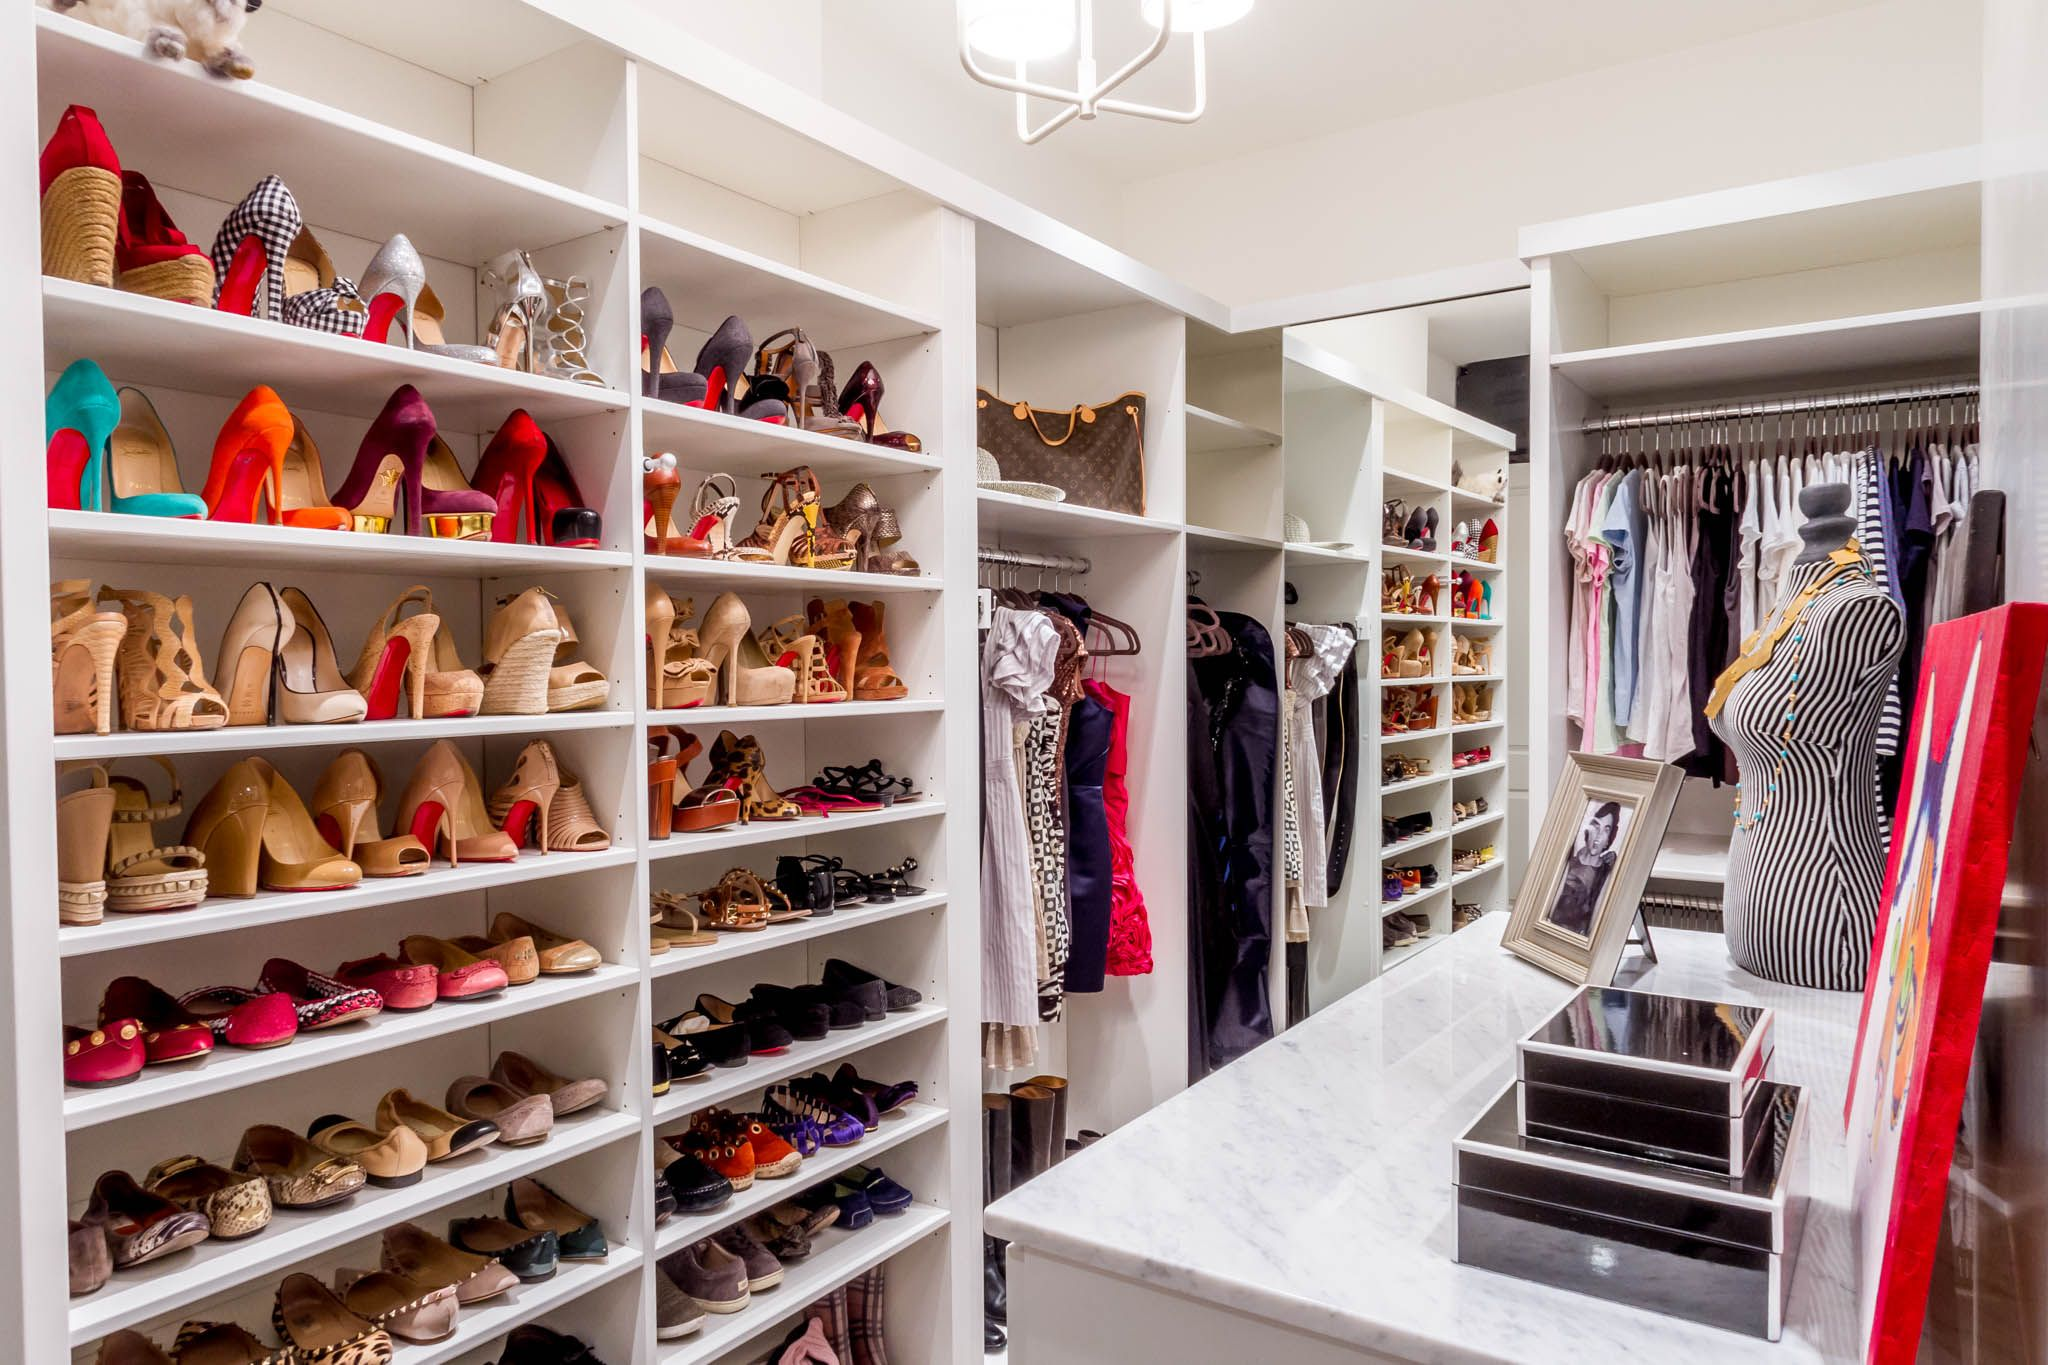 Different sized shoe shelves adorn this white